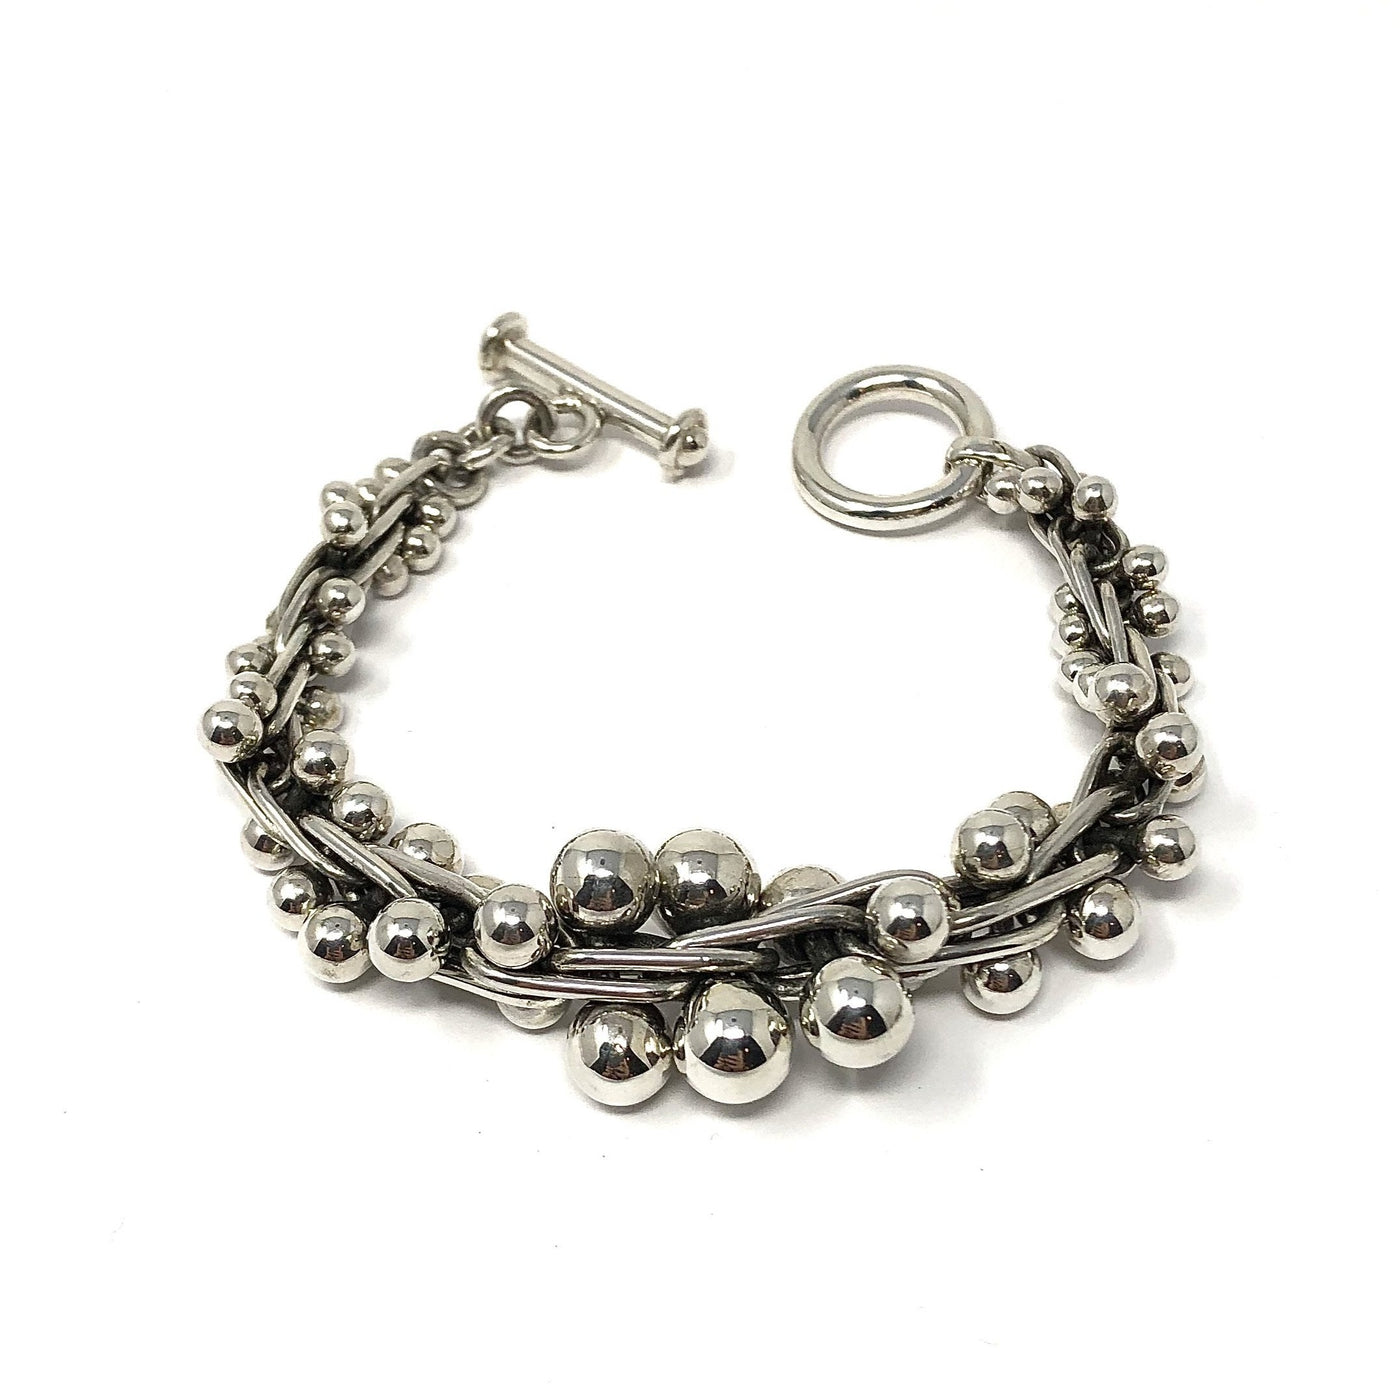 CH 60-70 MEDIUM GRADUATED SPRATLING BRACELET